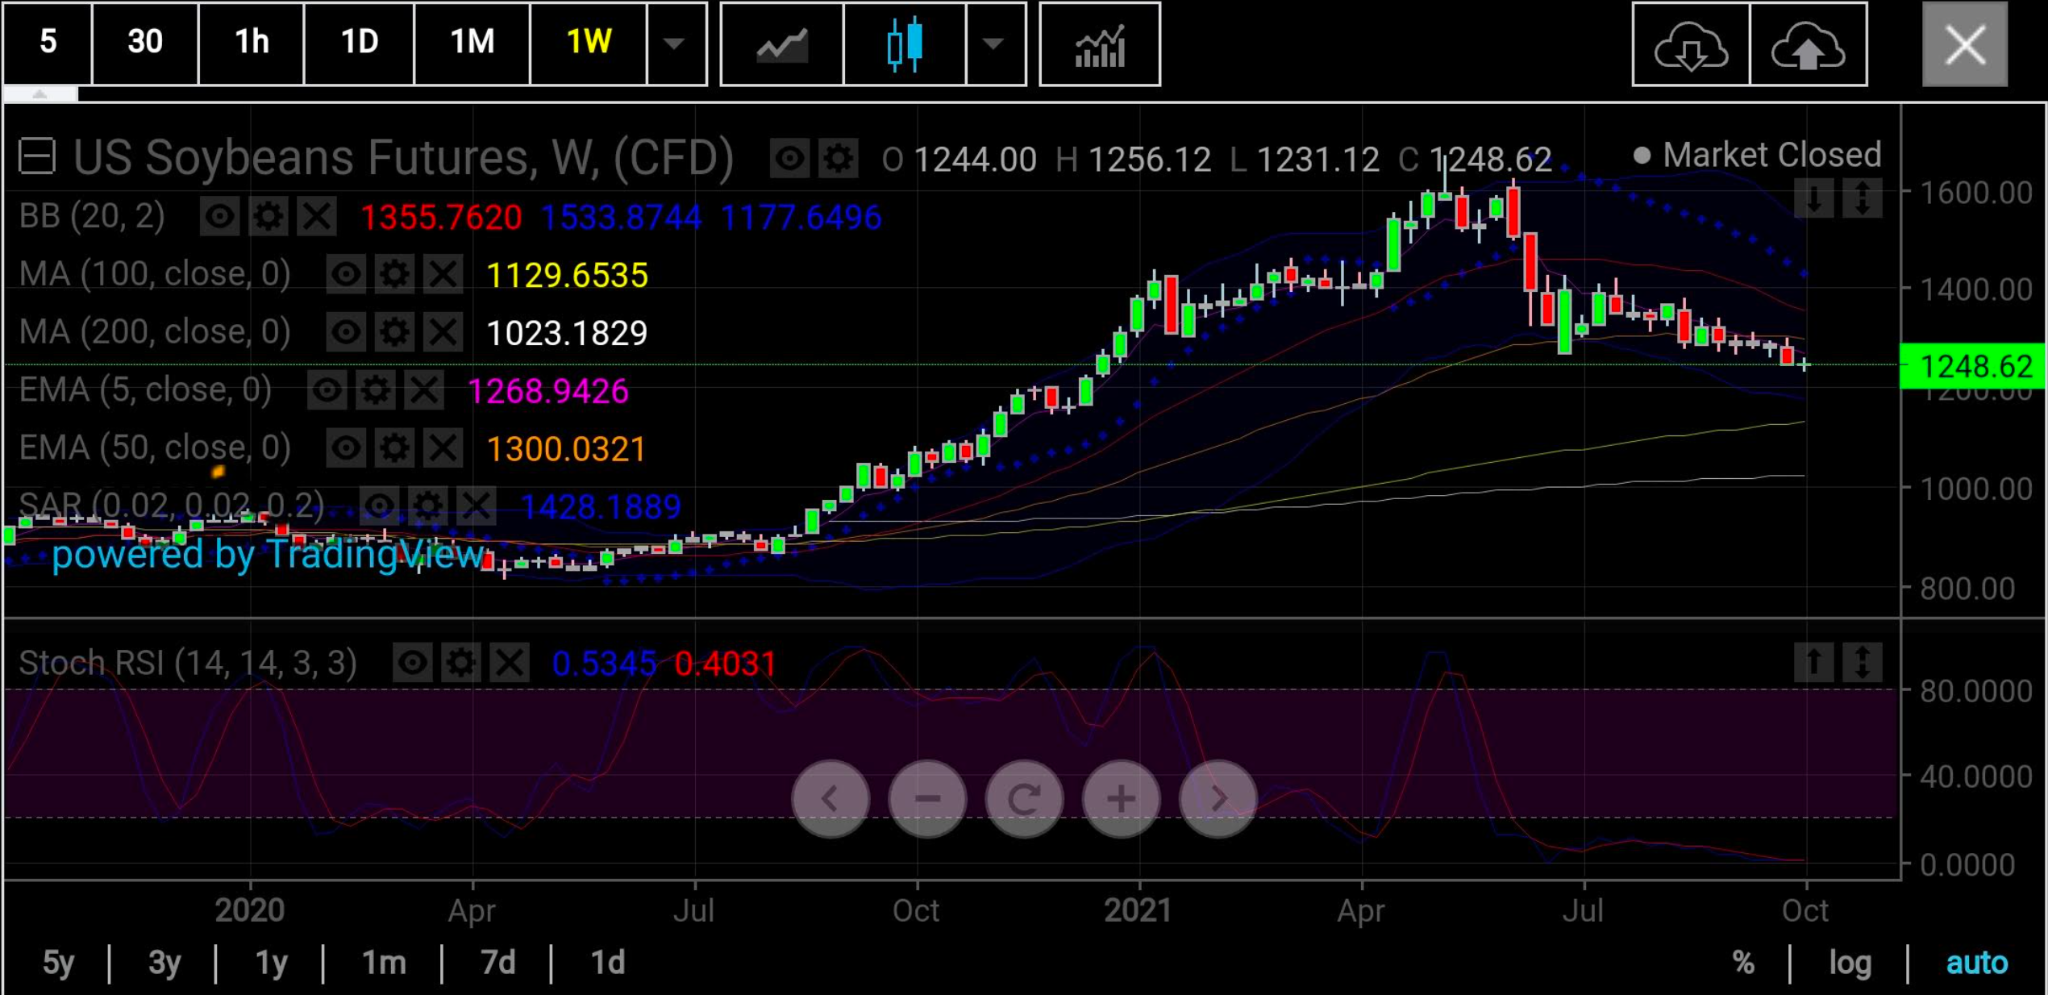 Soy Weekly